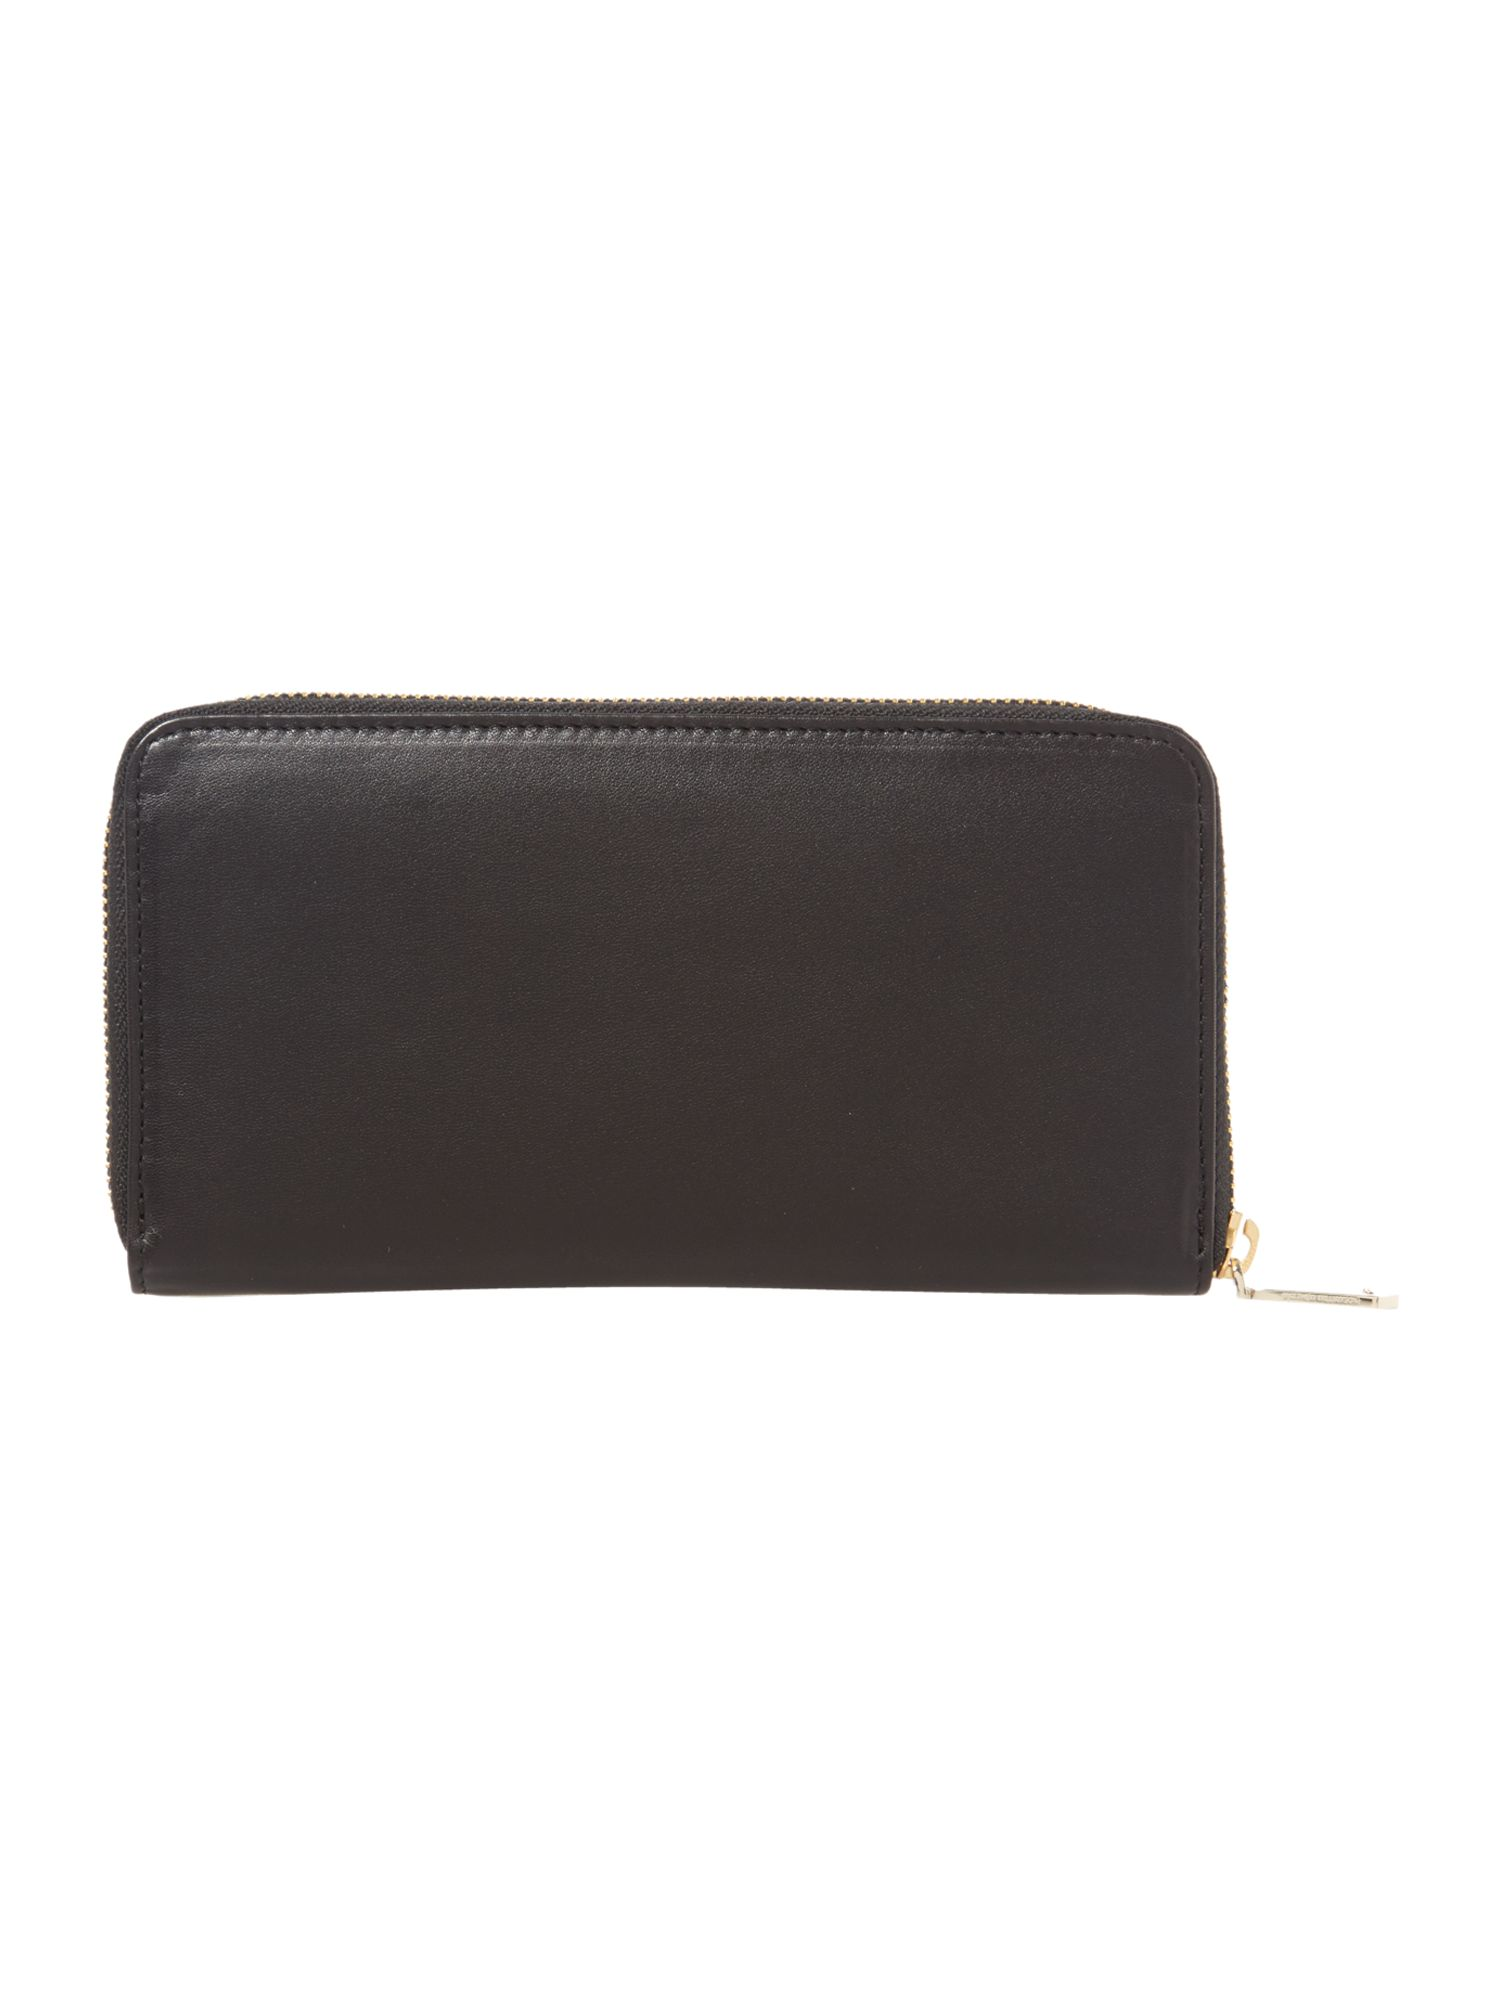 Nomad large black zip around purse